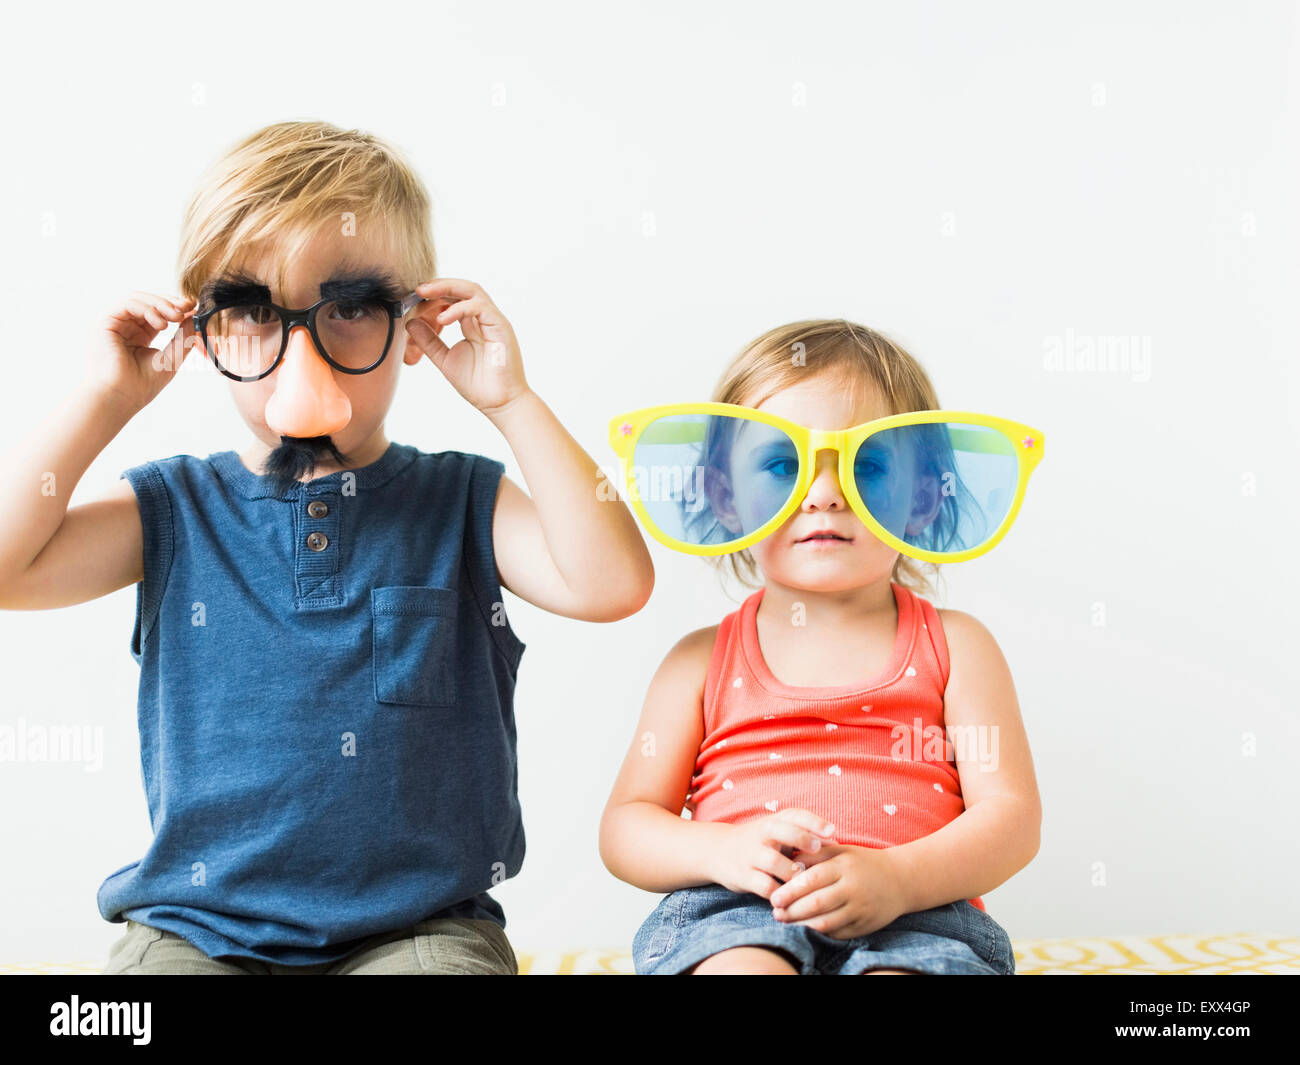 Children (2-3) wearing novelty glasses - Stock Image